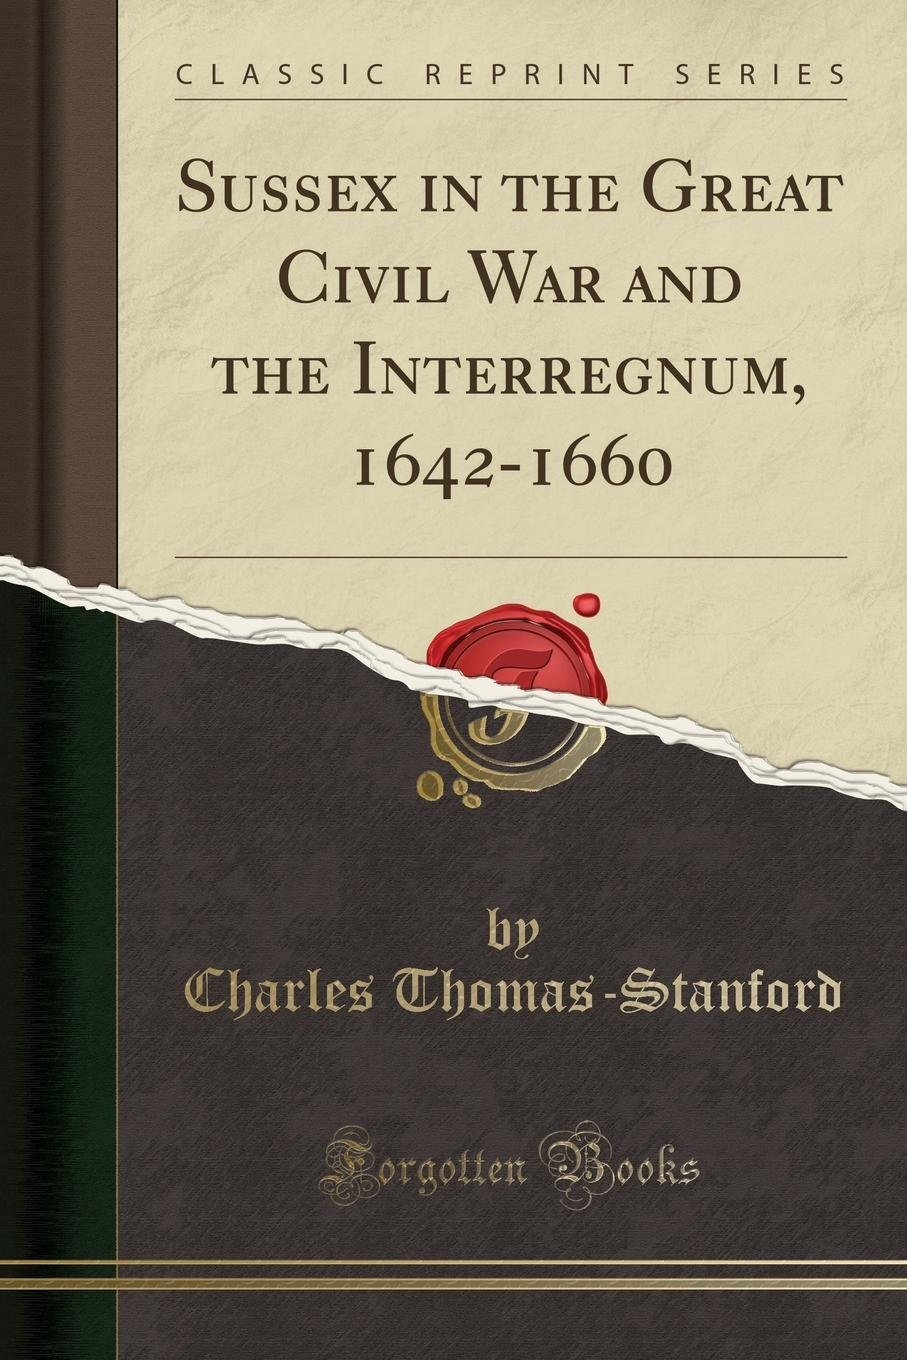 Sussex in the great Civil War and the interregnum, 1642-1660 (1910)